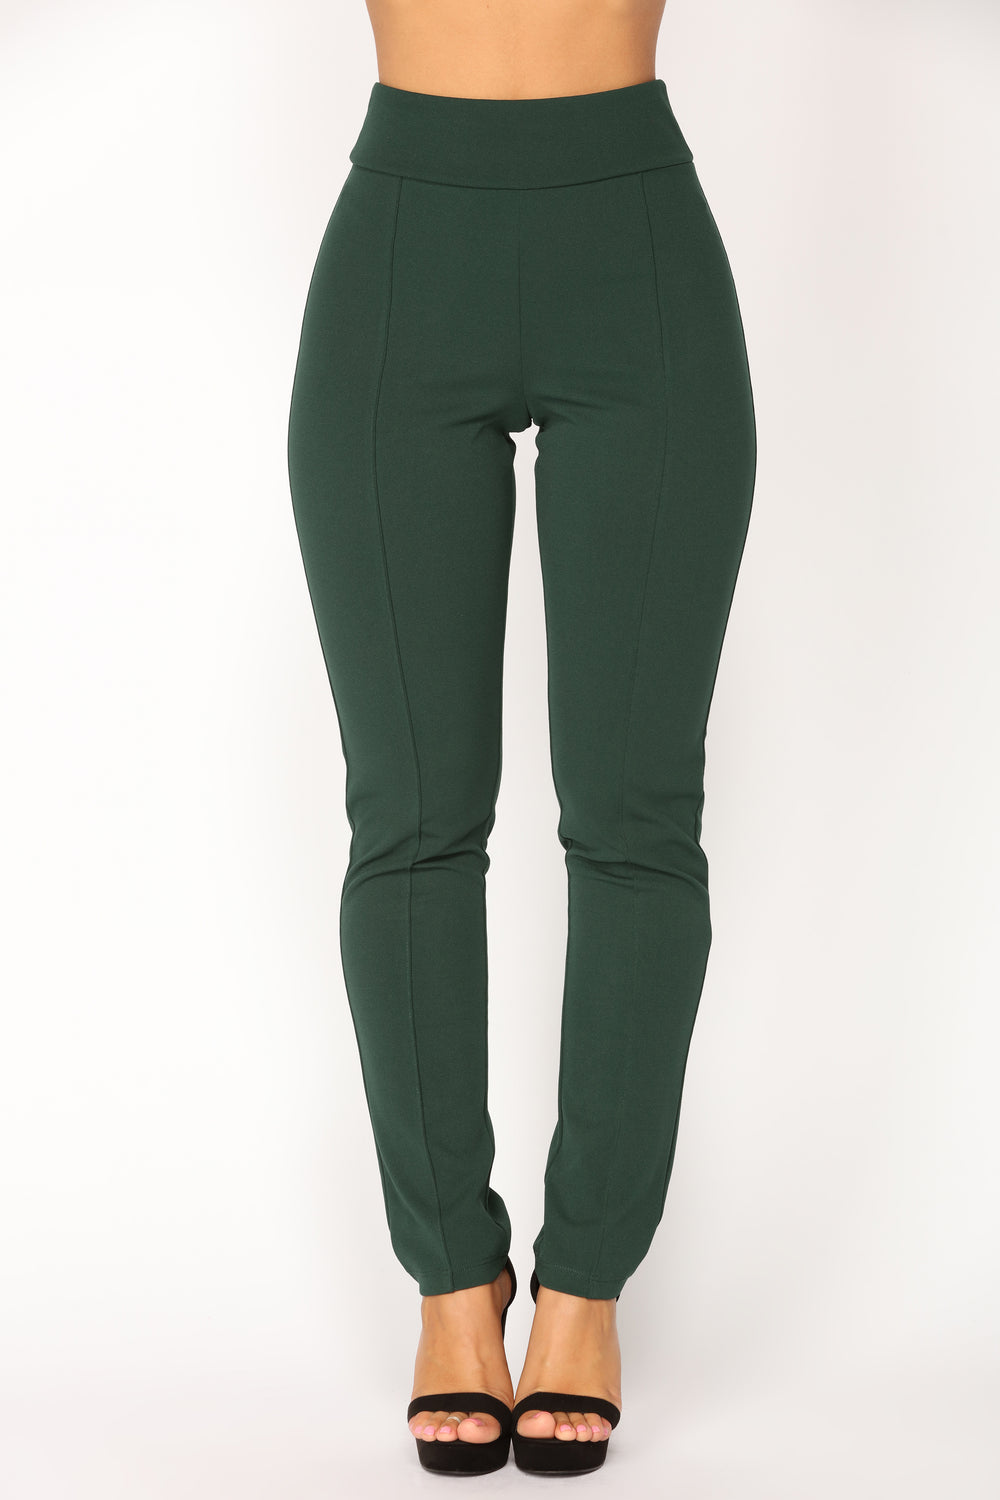 Lawrence High Rise Pants - Hunter Green